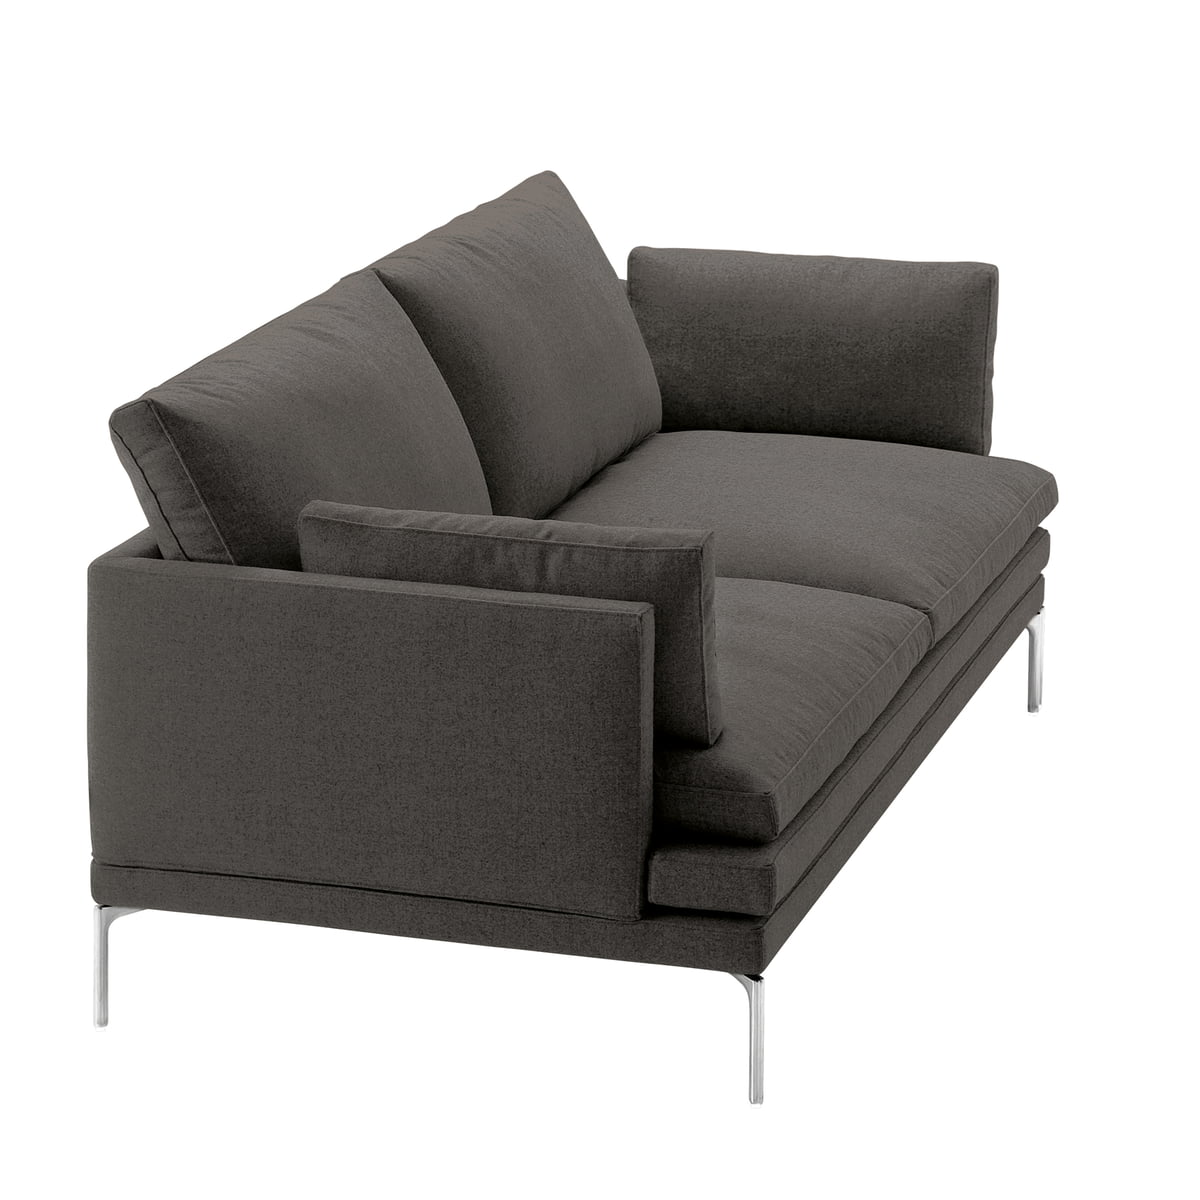 zanotta william sofa 180 cm vasco 20 dark grey 25805. Black Bedroom Furniture Sets. Home Design Ideas